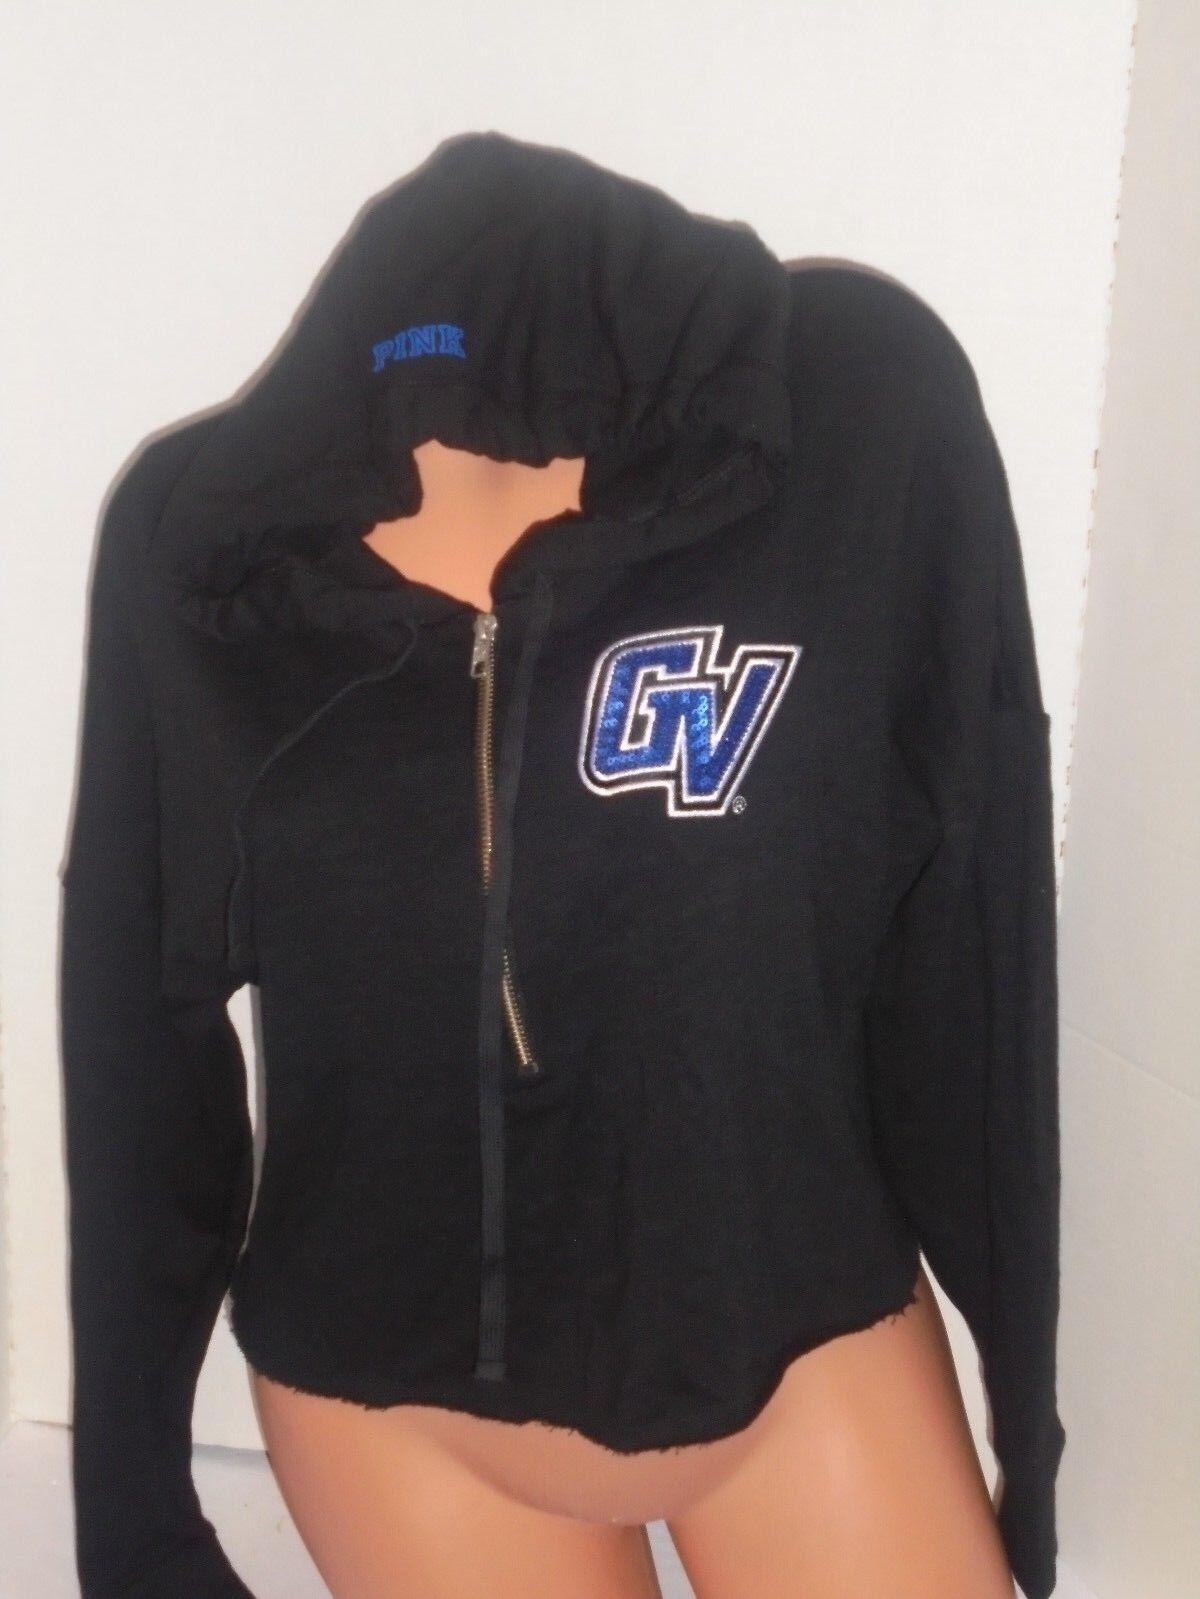 69 Victoria's Secret PINK cropped hoodieGrand Valley Lakers GW bling sequin XS